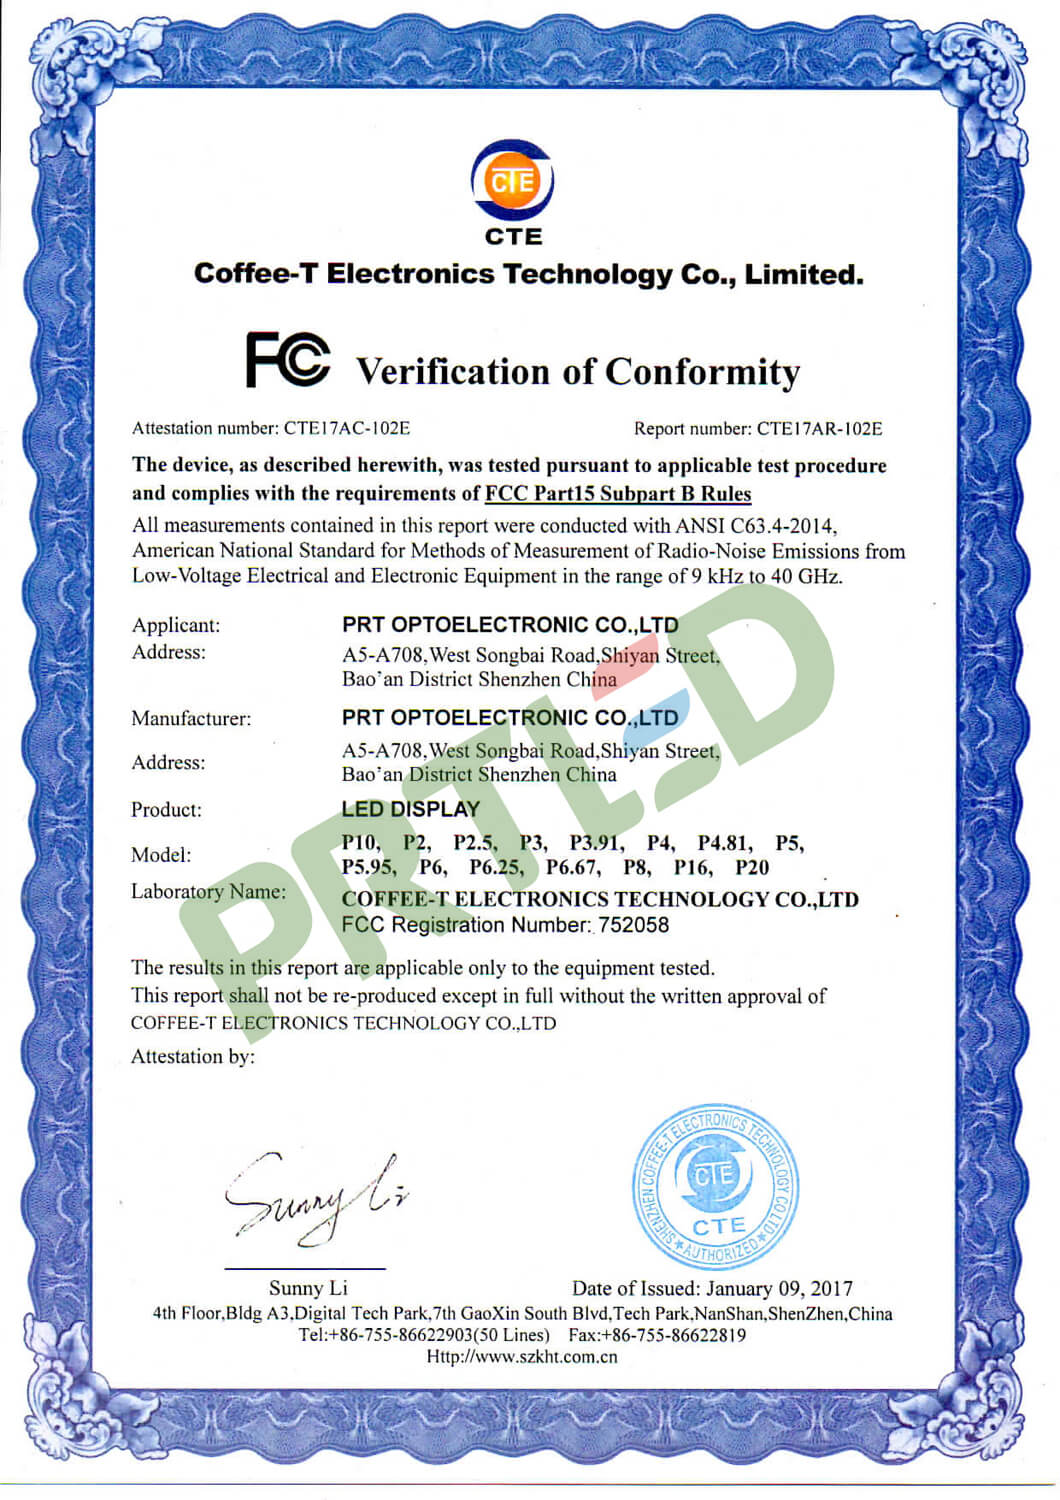 New FCC certificate